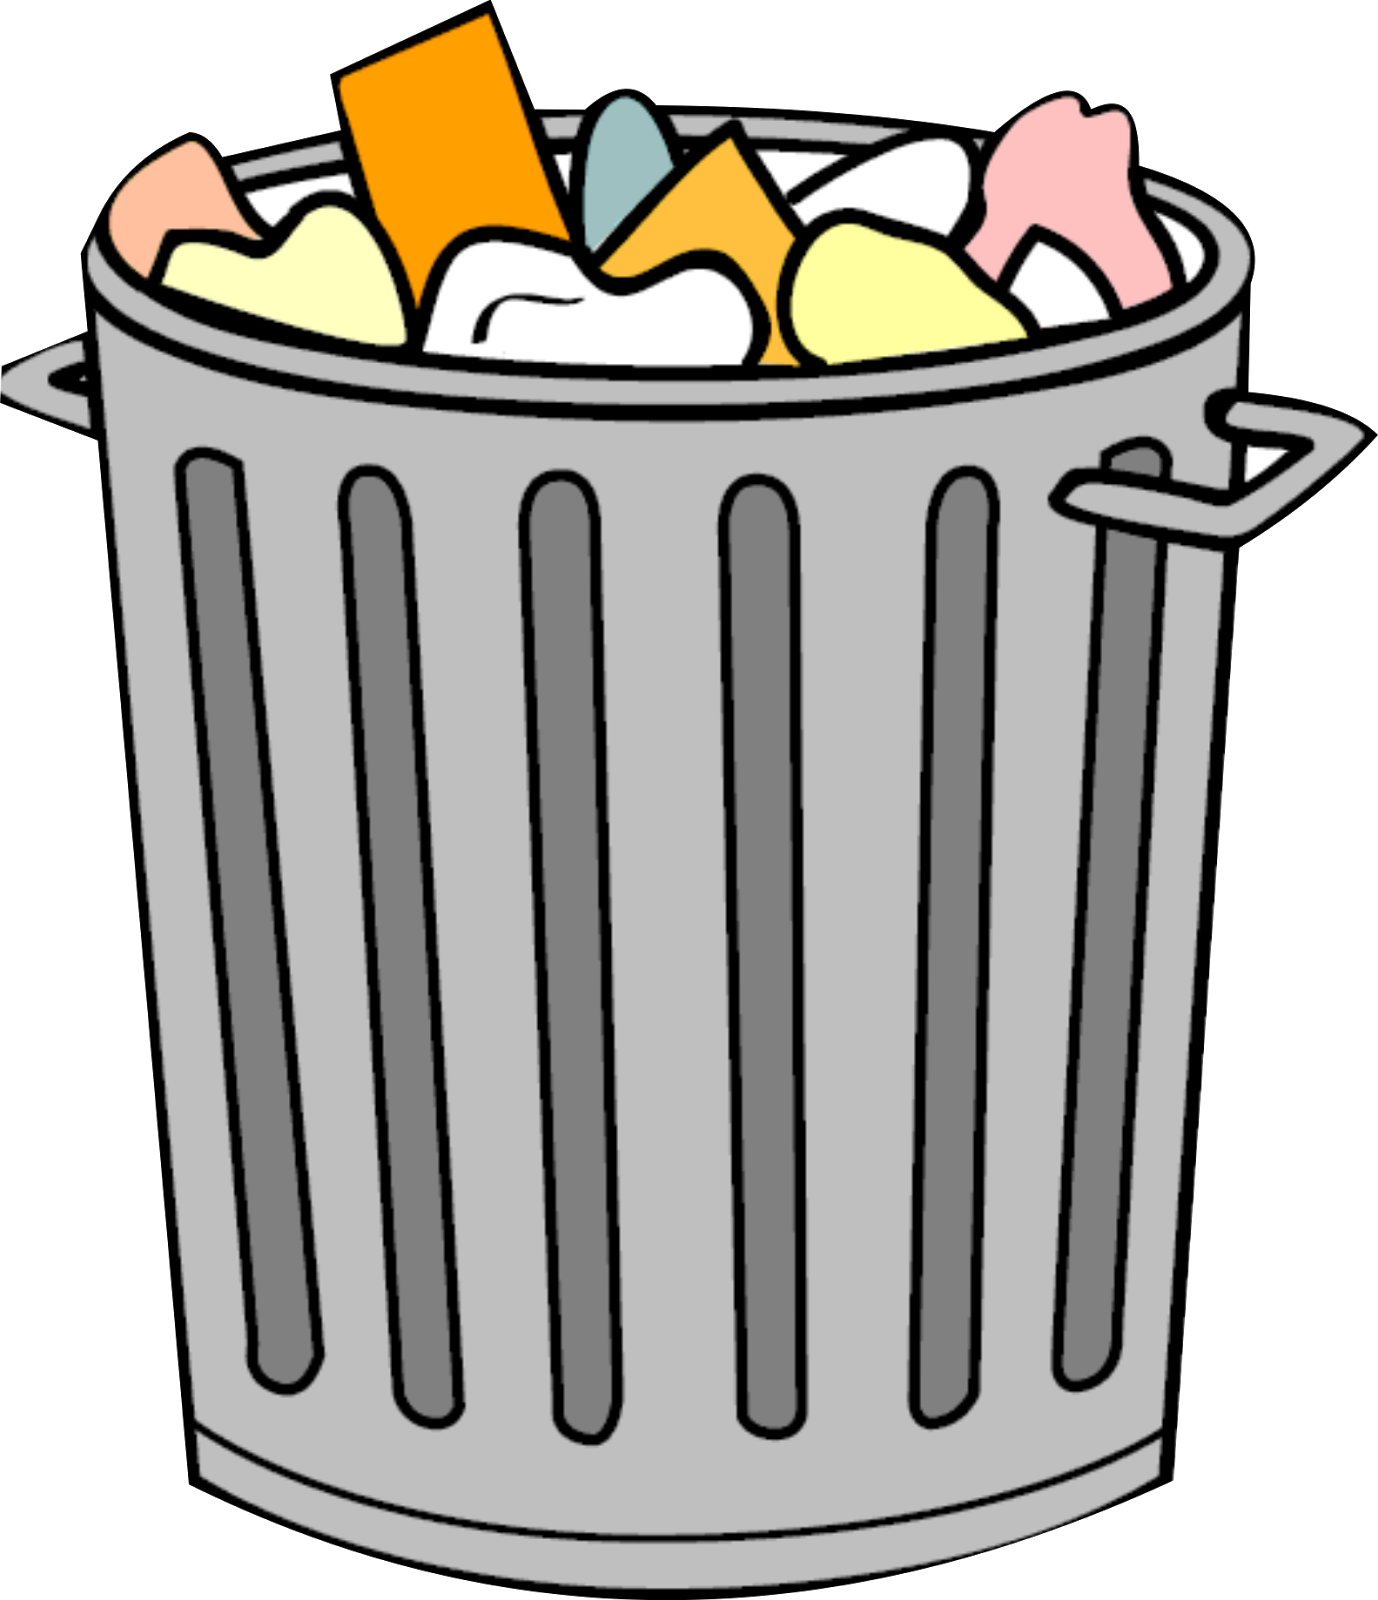 Food clipart pollution. Land